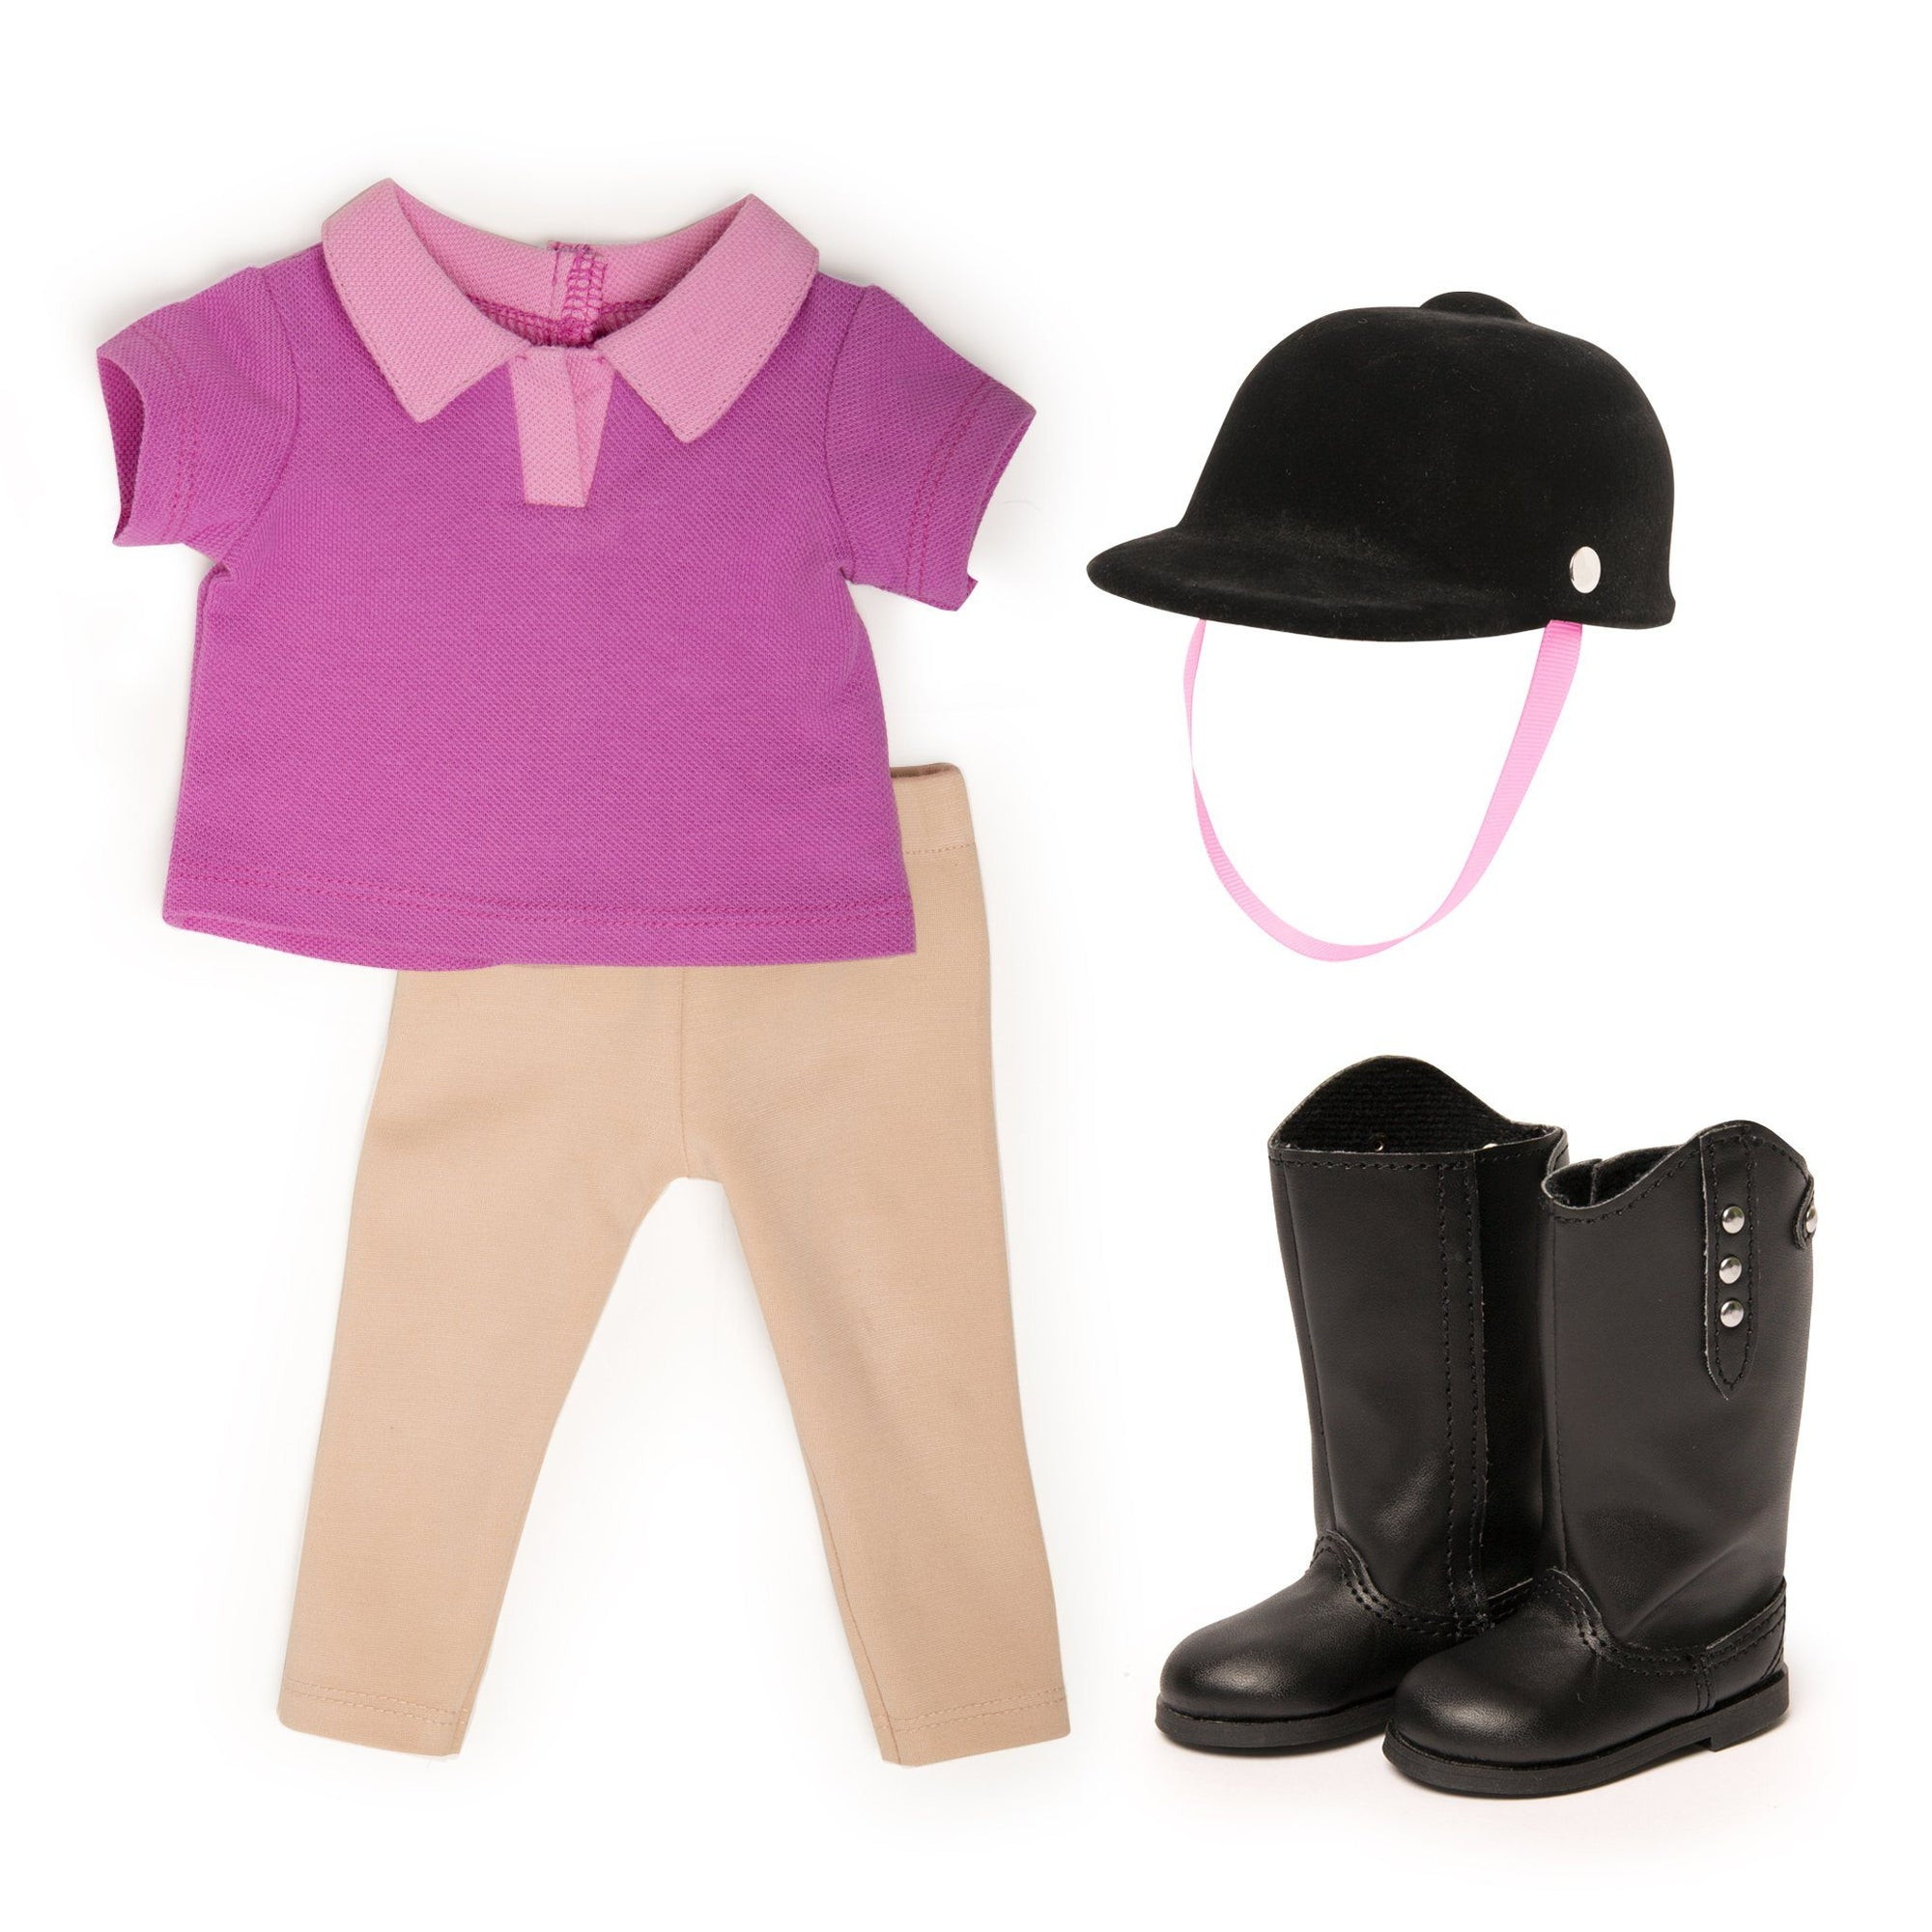 Hold Your Horses Km106 Equestrian Outfit For 18 Inch Dolls Maplelea